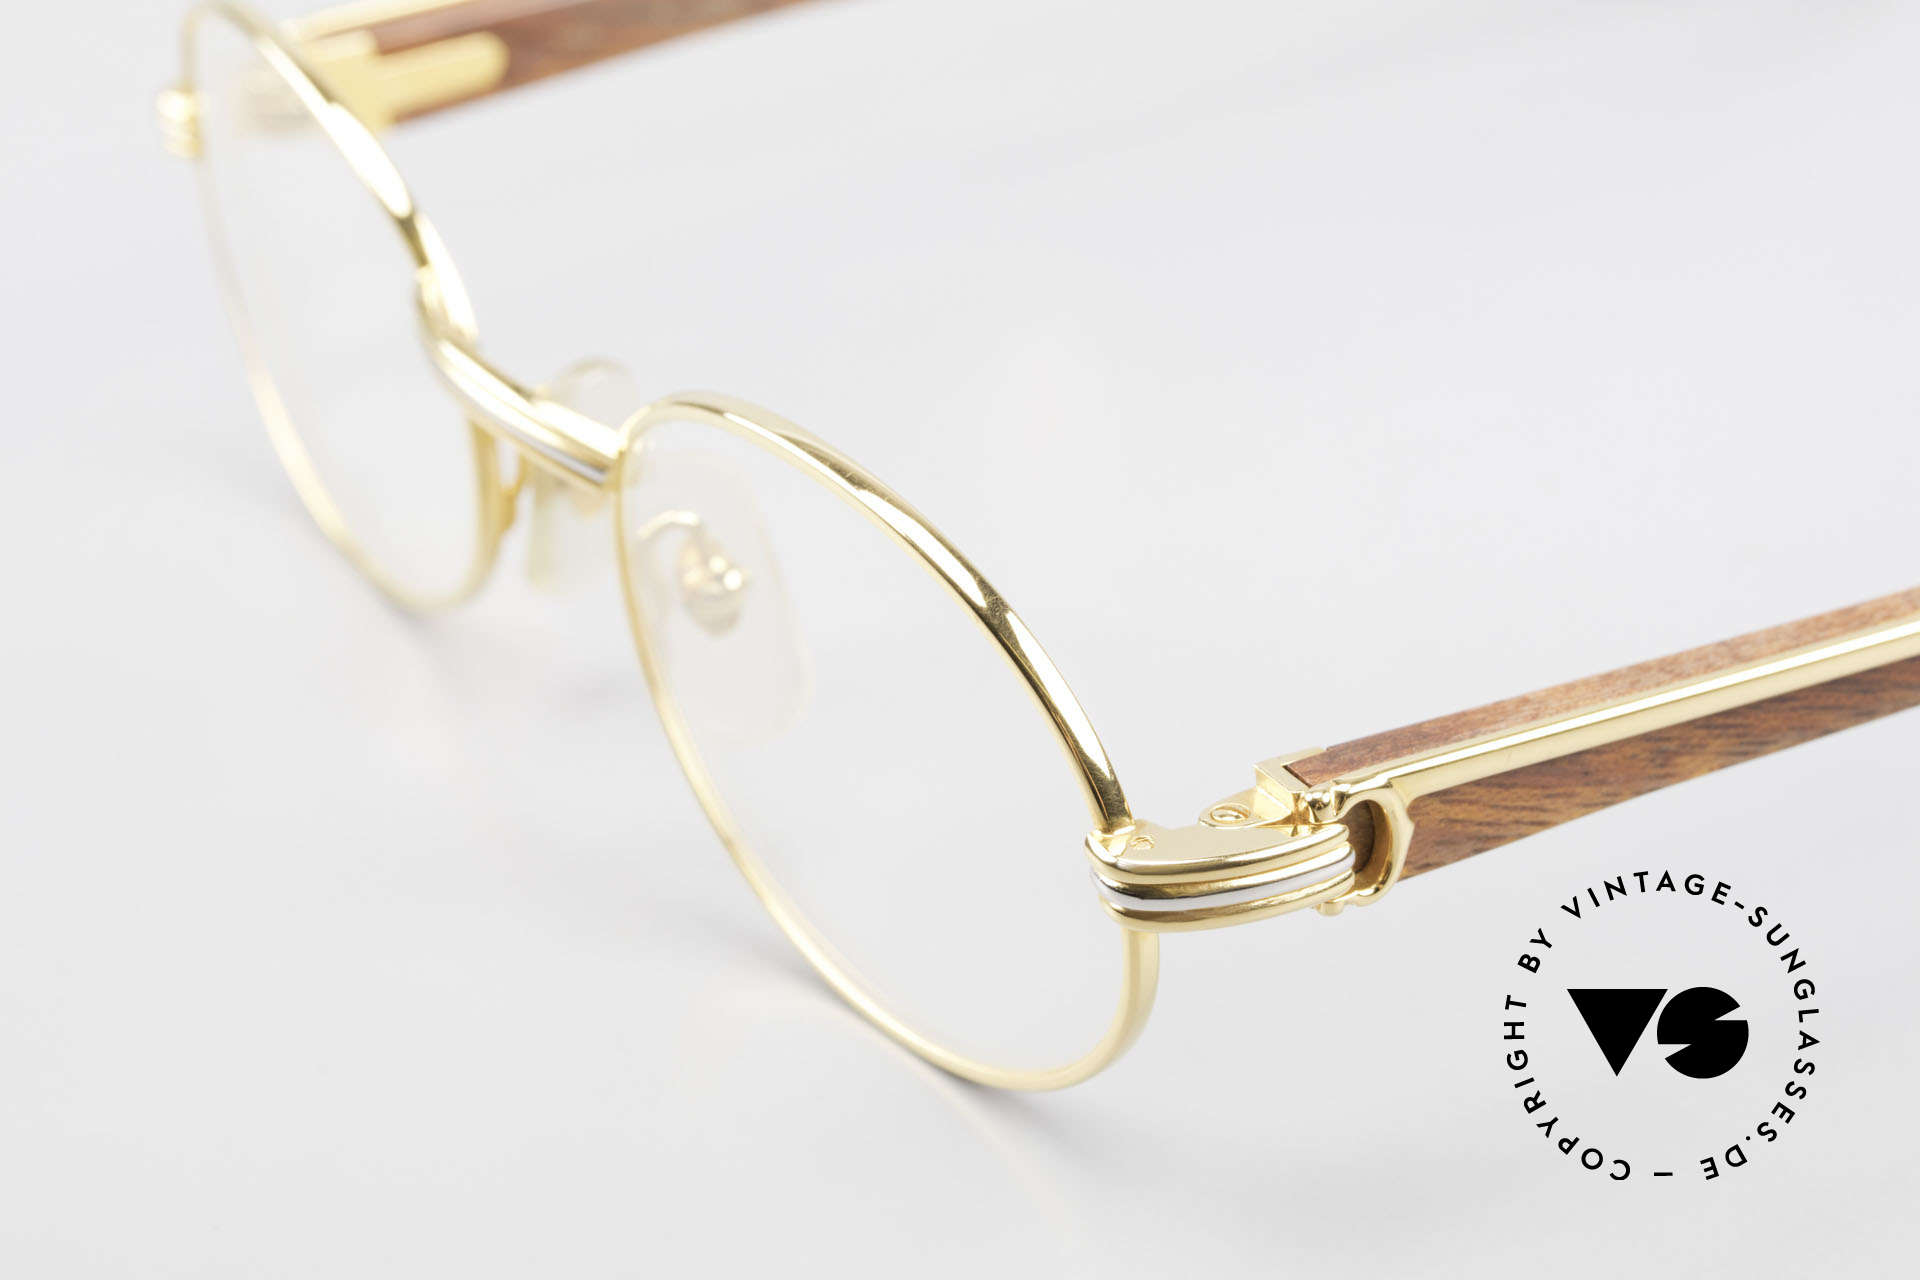 Cartier Giverny Oval Wood Glasses Gold Plated, oval gold-plated frame, pure luxury lifestyle, VERTU, Made for Men and Women